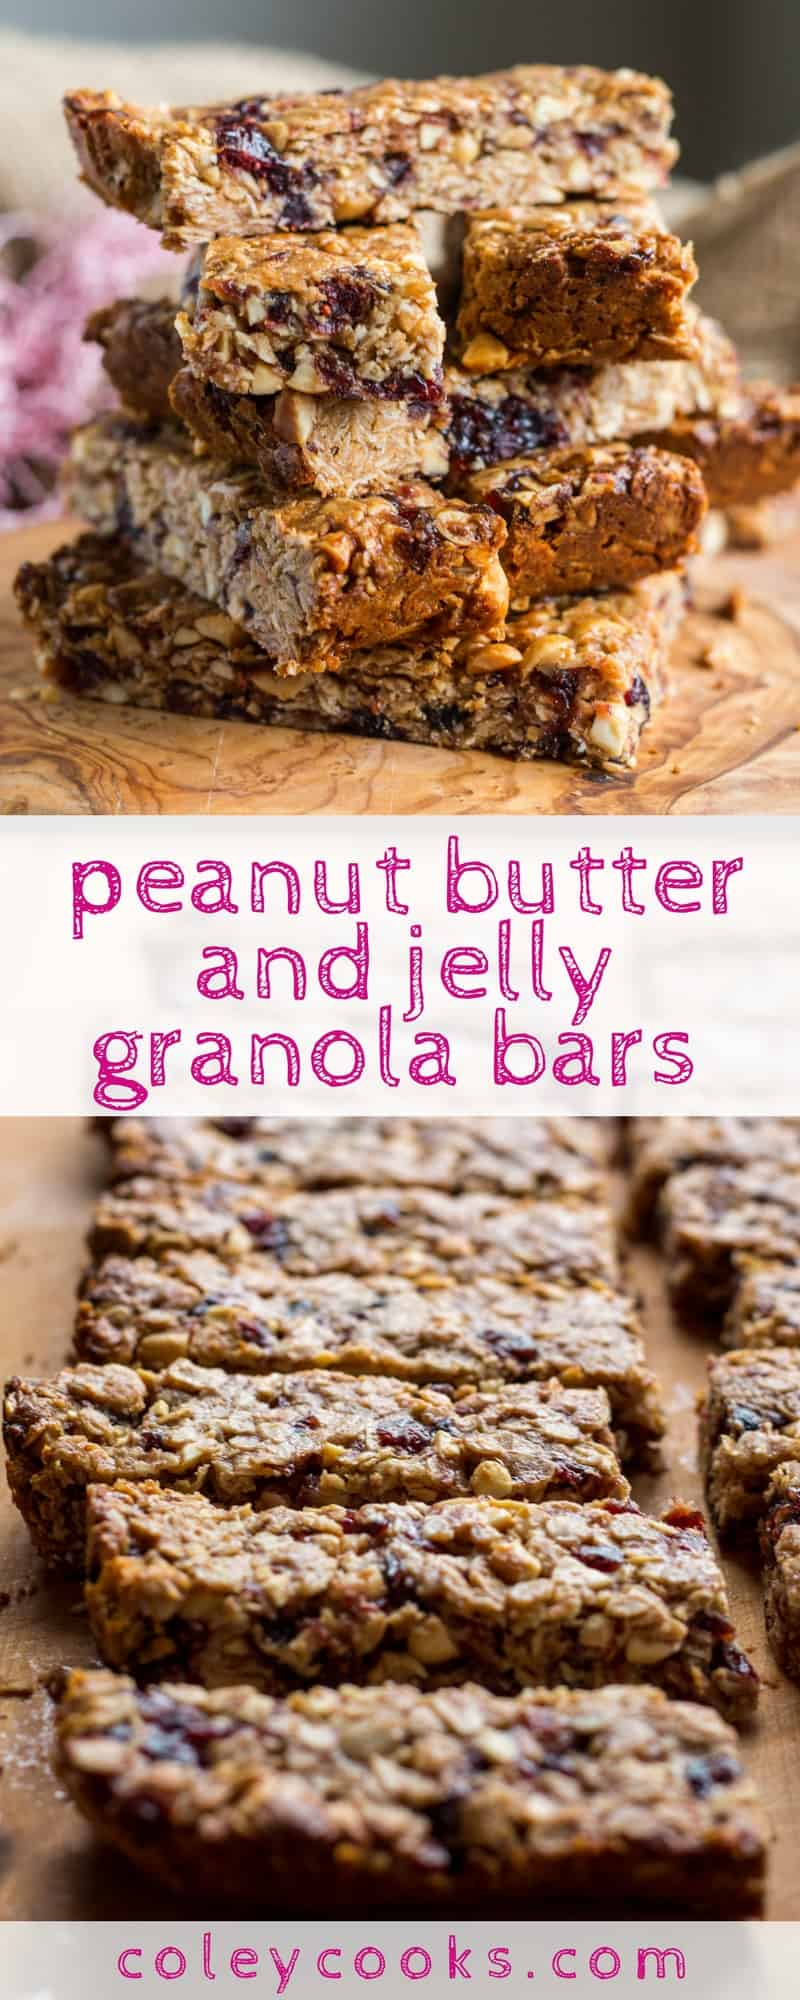 PEANUT BUTTER and JELLY GRANOLA BARS | This easy, healthy recipe for chewy peanut butter and jelly granola bars is gluten free + vegan! Great for kids, quick breakfasts, and snacking on the go! #glutenfree #vegan | ColeyCooks.com